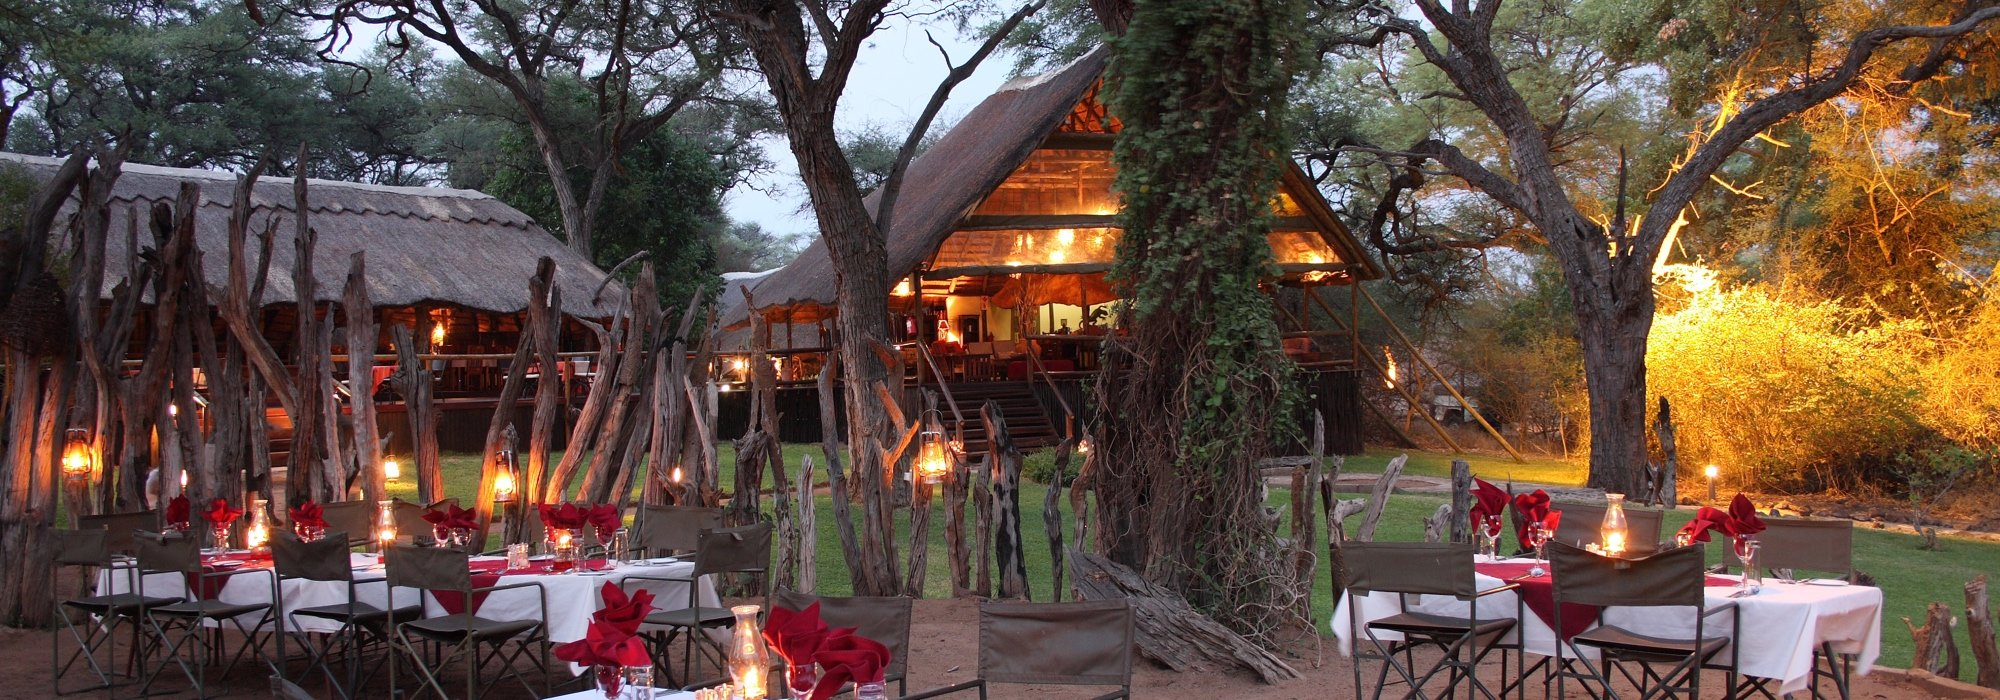 Elephant Valley Lodge Boma Dinner